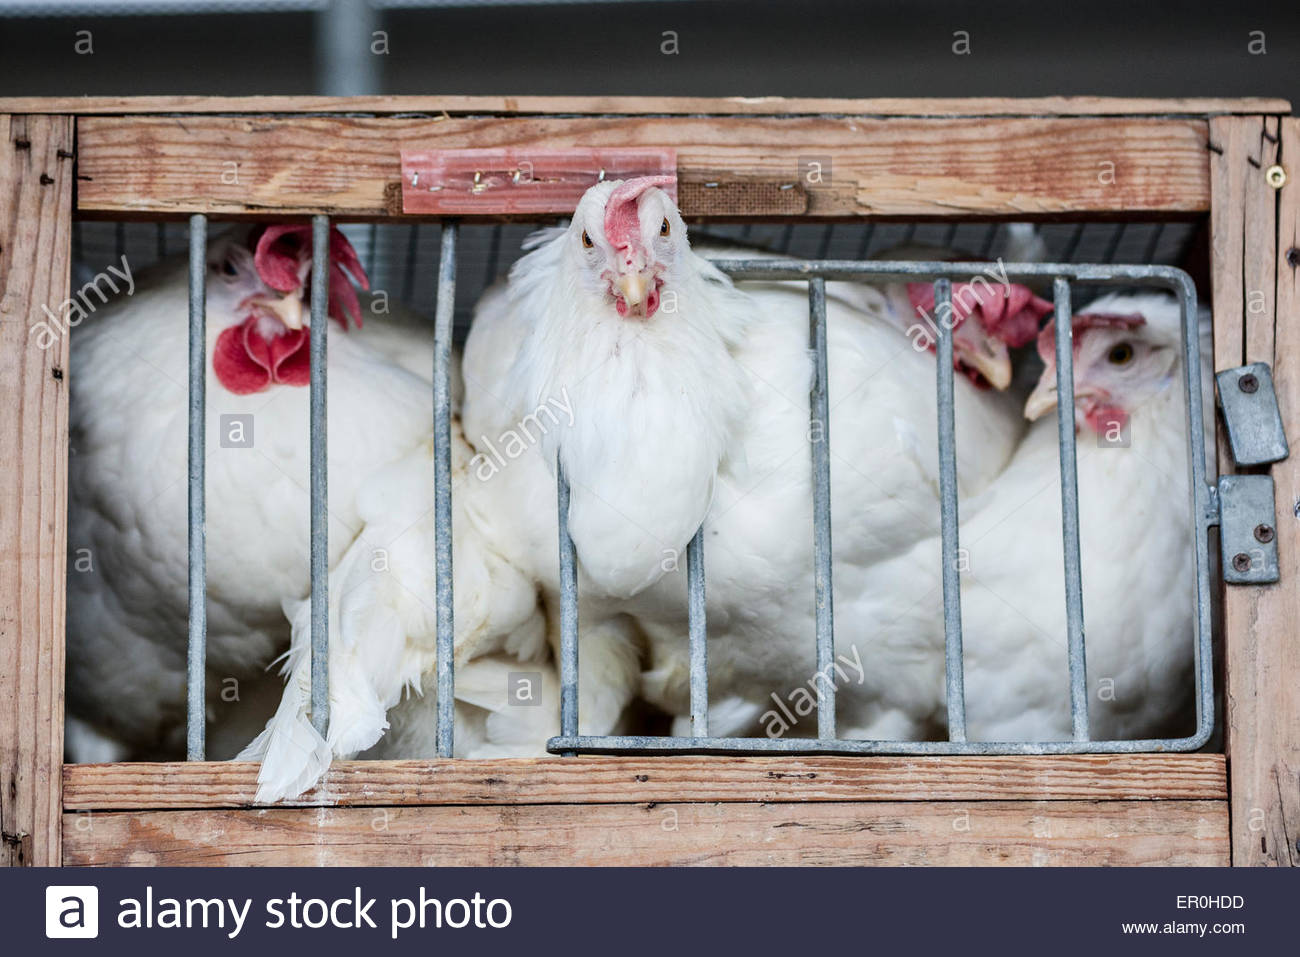 caged chicken during poultry exhibition - Stock Image